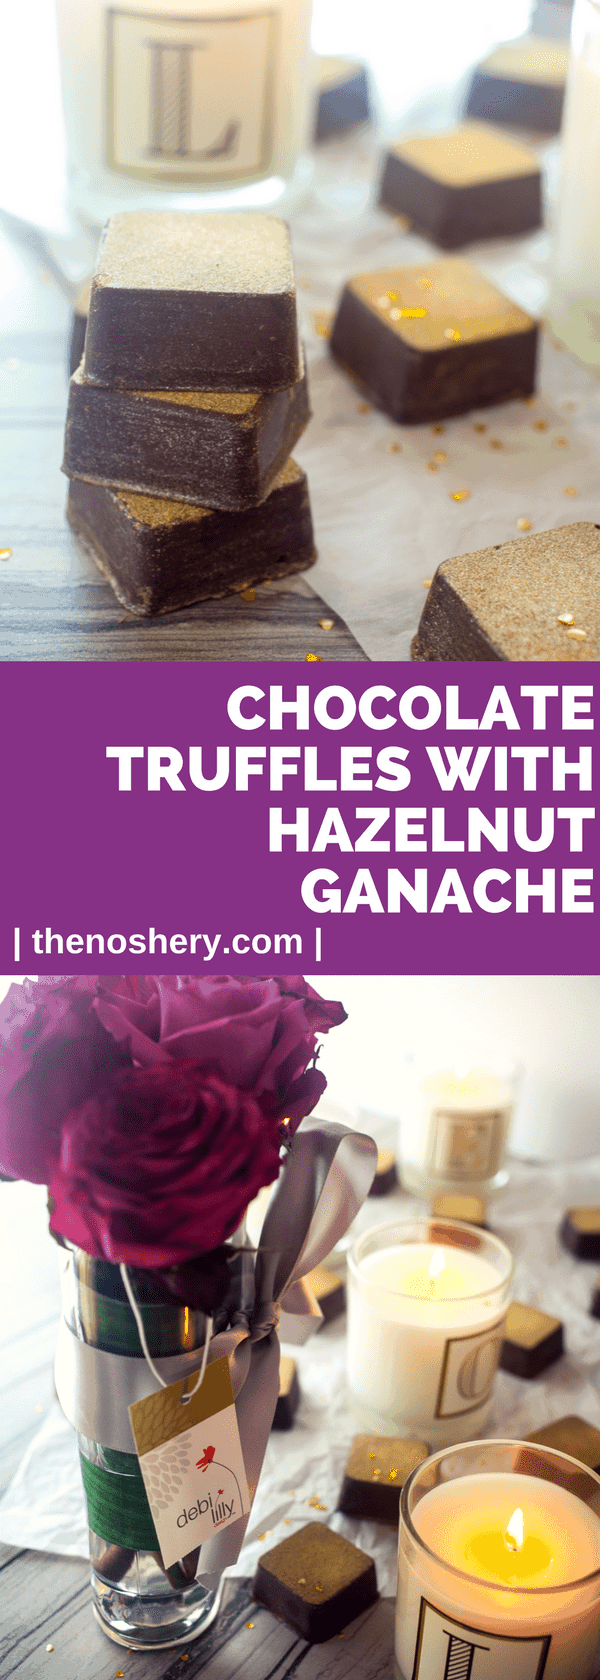 Chocolate Truffles with Hazelnut Ganache | Molded bittersweet chocolate truffles stuffed with a hazelnut liquor chocolate ganache. The perfect homemade gift for the one you love. | The Noshery